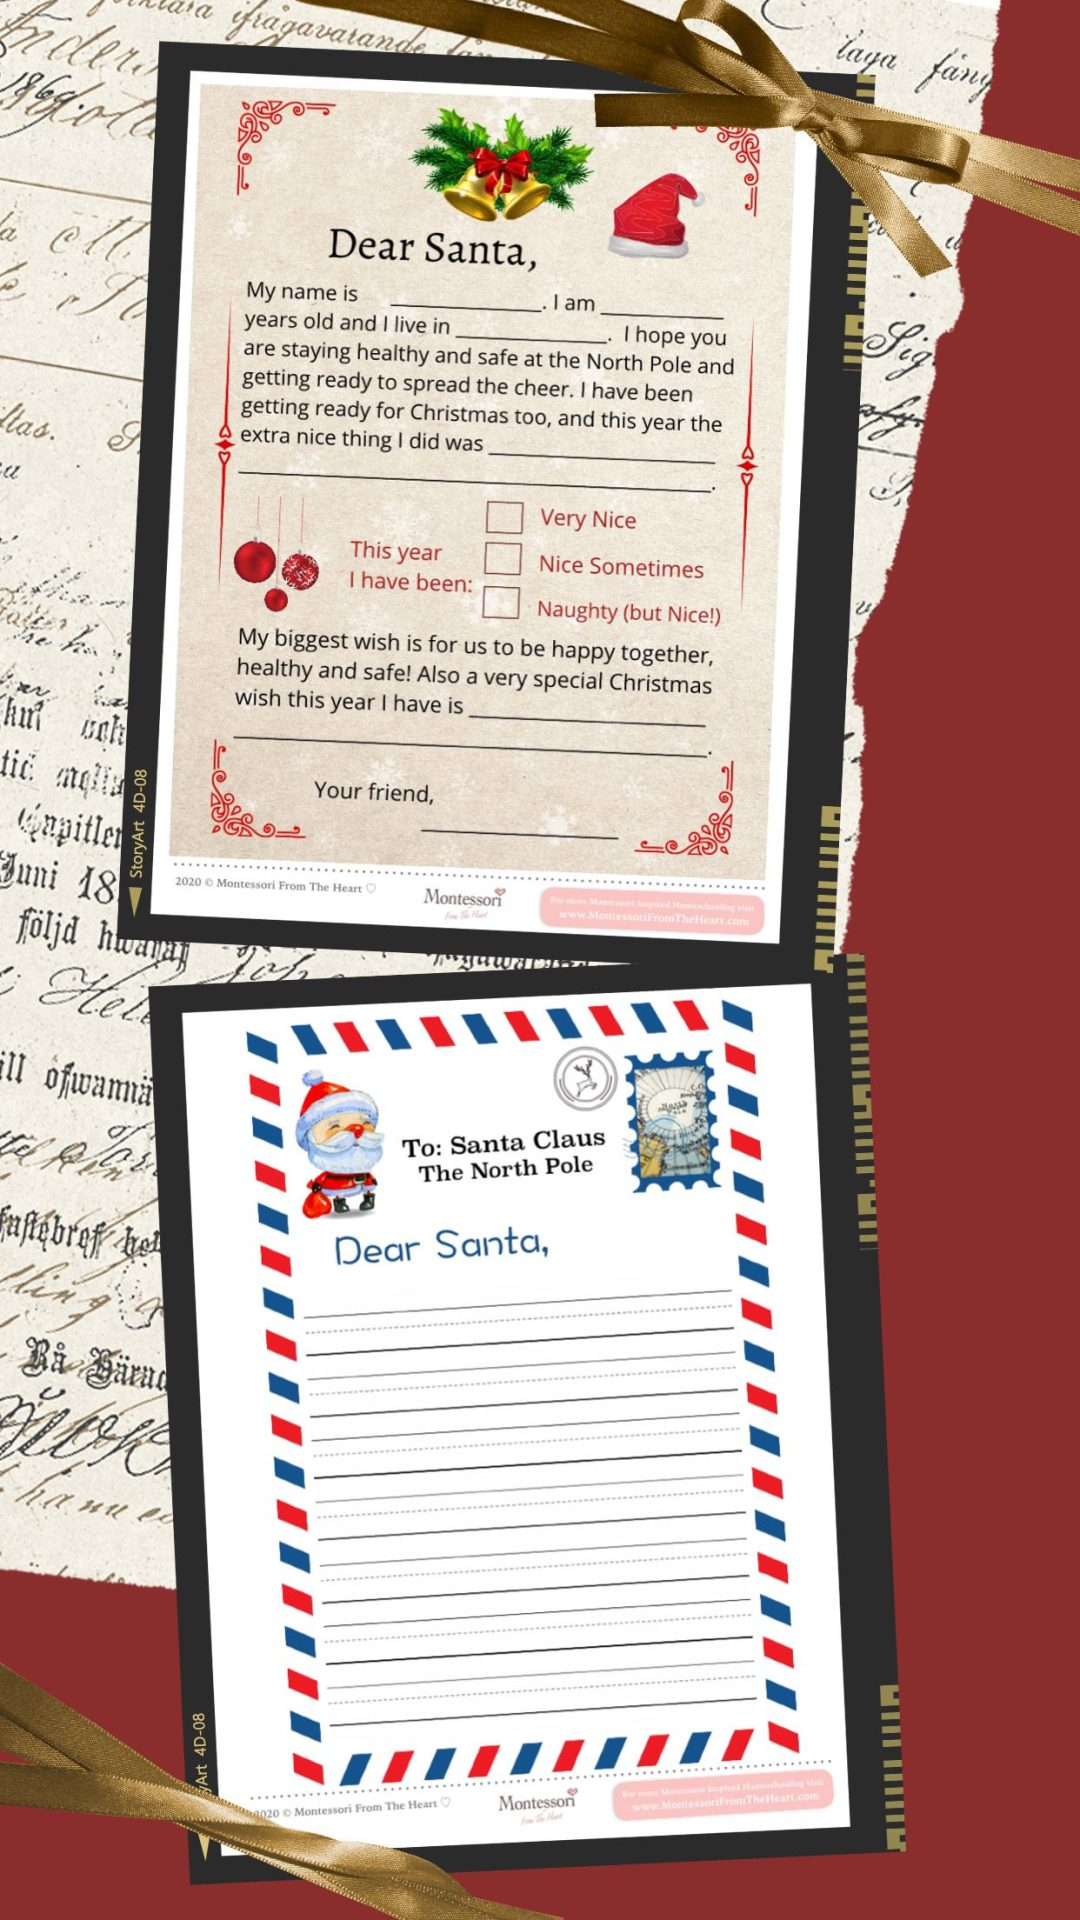 2 LETTERs to SANTA TEMPLATES